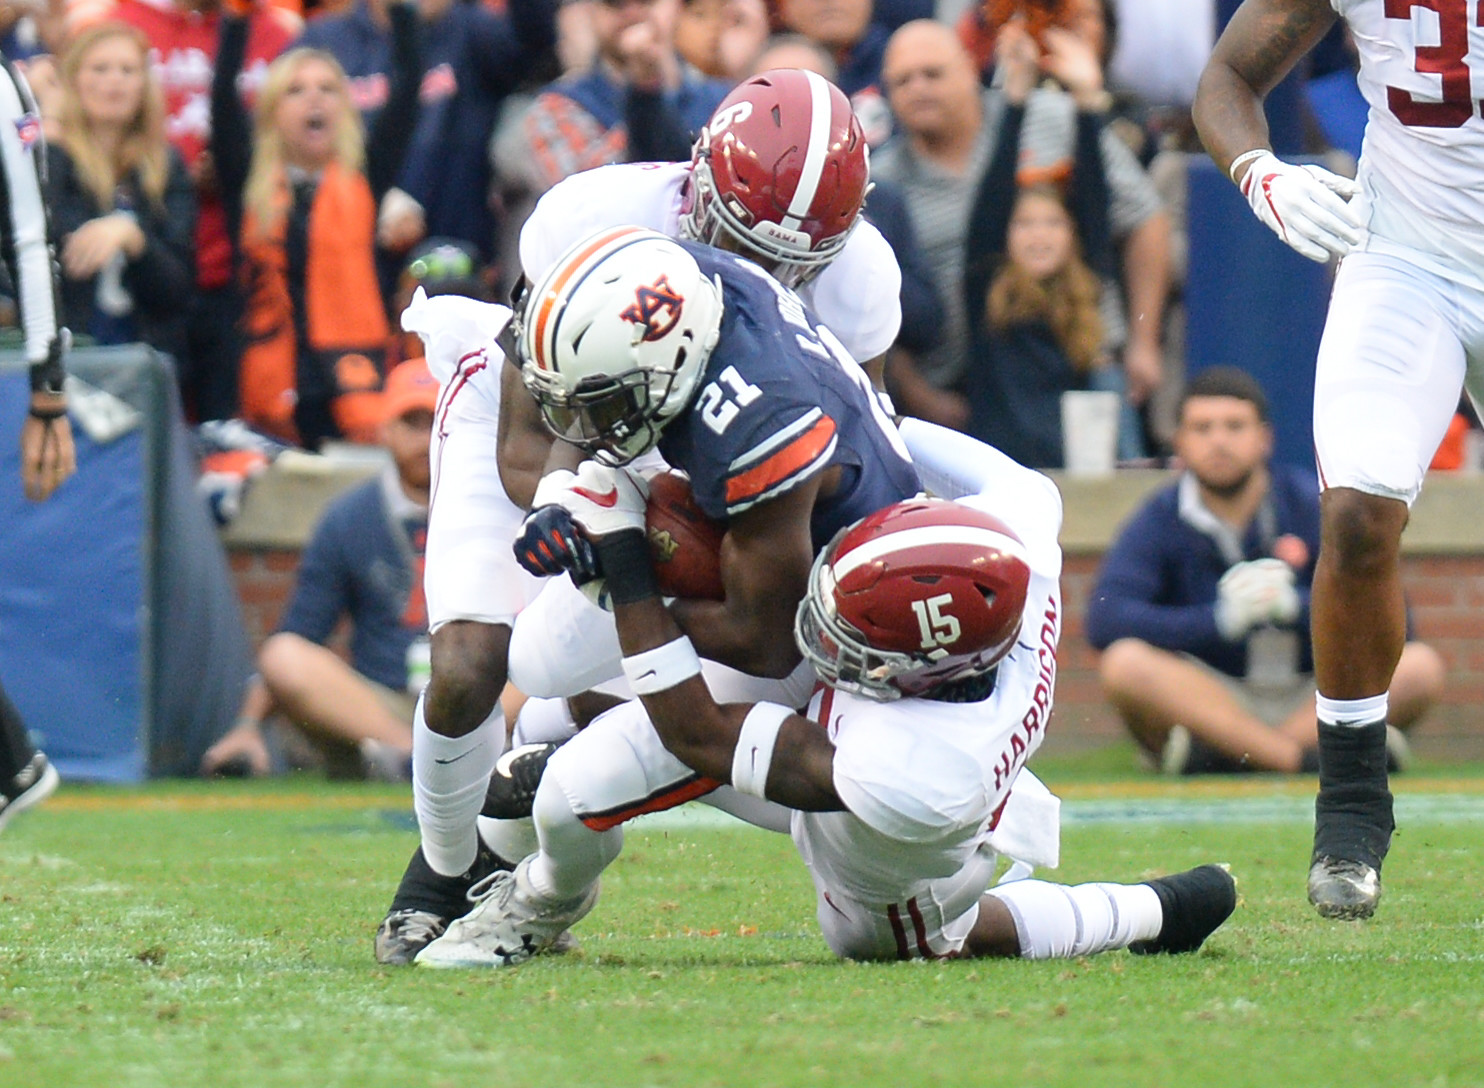 Auburn Tigers running back Kerryon Johnson (21) is brought down by Alabama Crimson Tide defensive back Ronnie Harrison (15) and defensive back Hootie Jones (6) during the first half of Saturday's game, at Jordan-Hare Stadium.